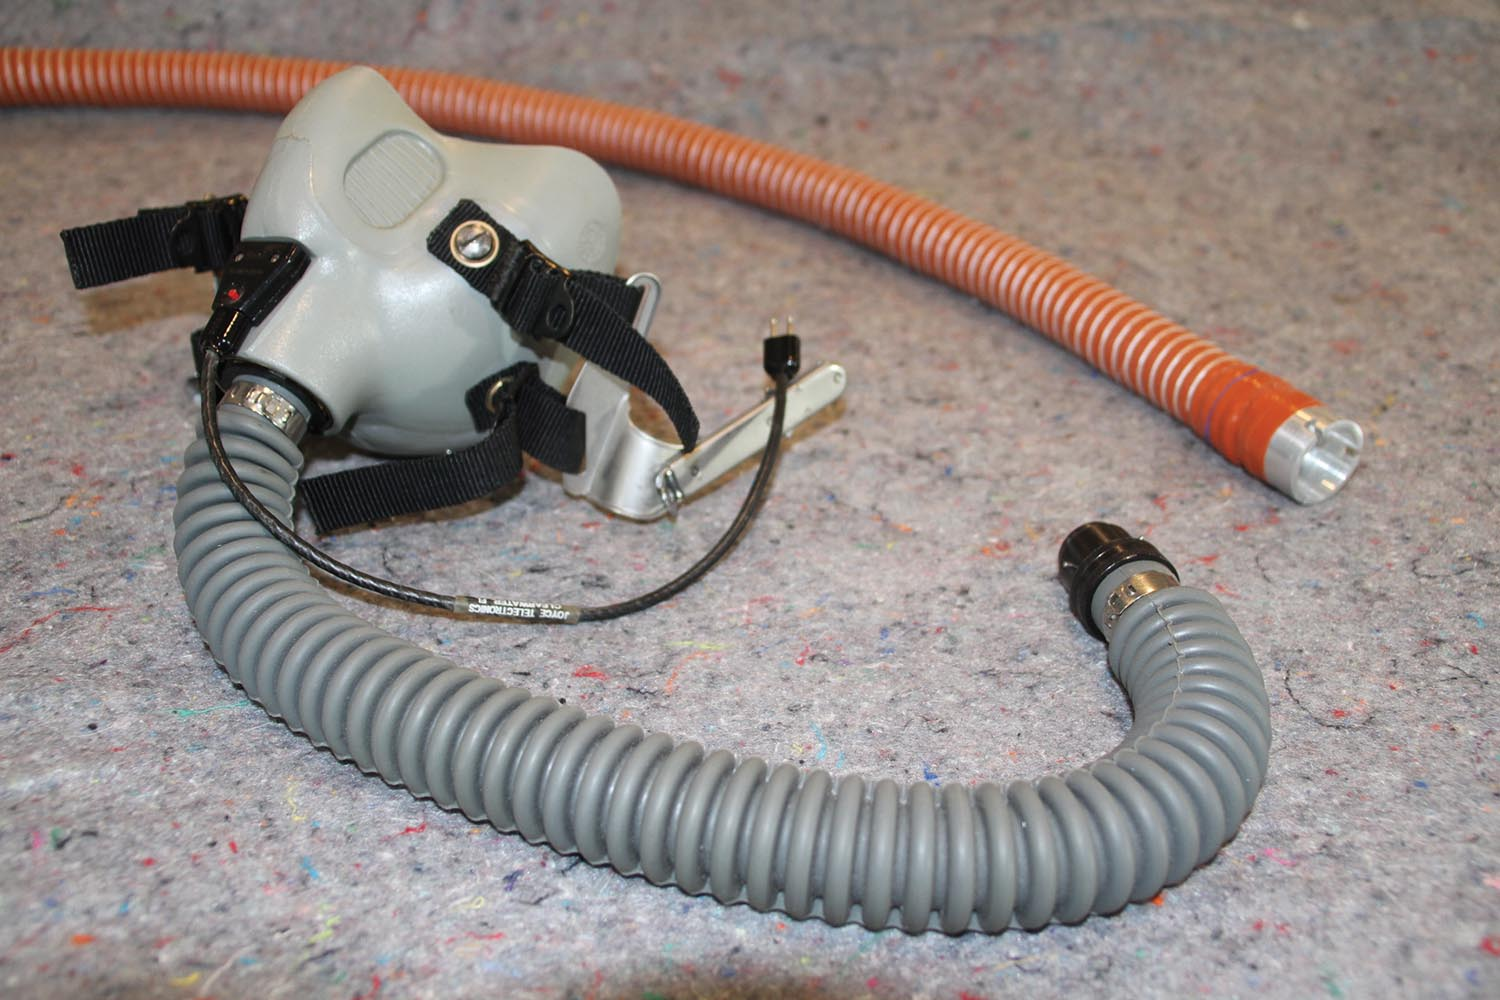 Three-quarter-inch SCAT tubing works well between the regulator and your mask hose.